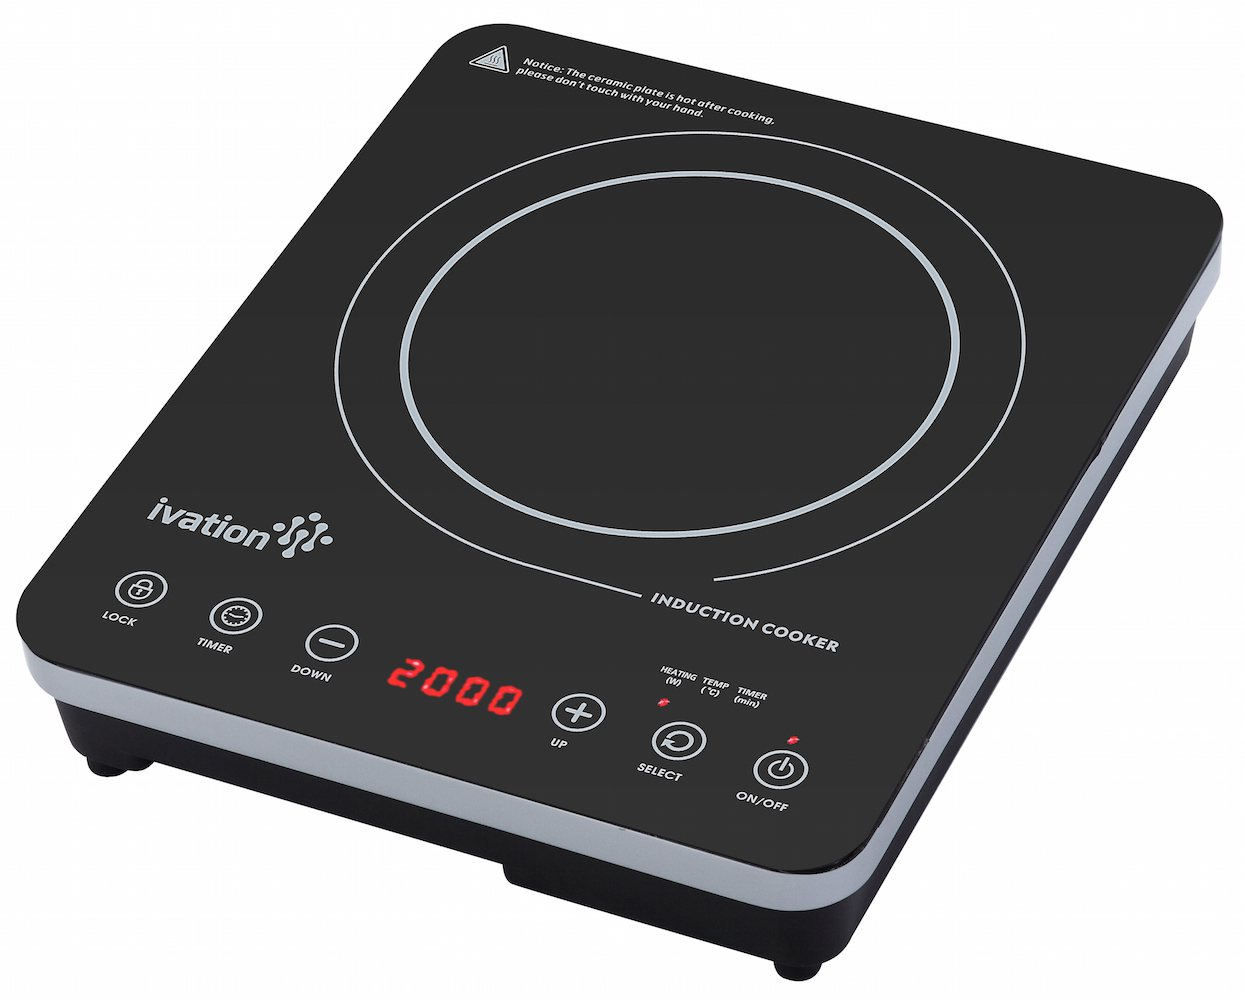 Countertop Induction Burner : ... Portable Induction Countertop Cooktop Burner Review ? The Gadget Flow